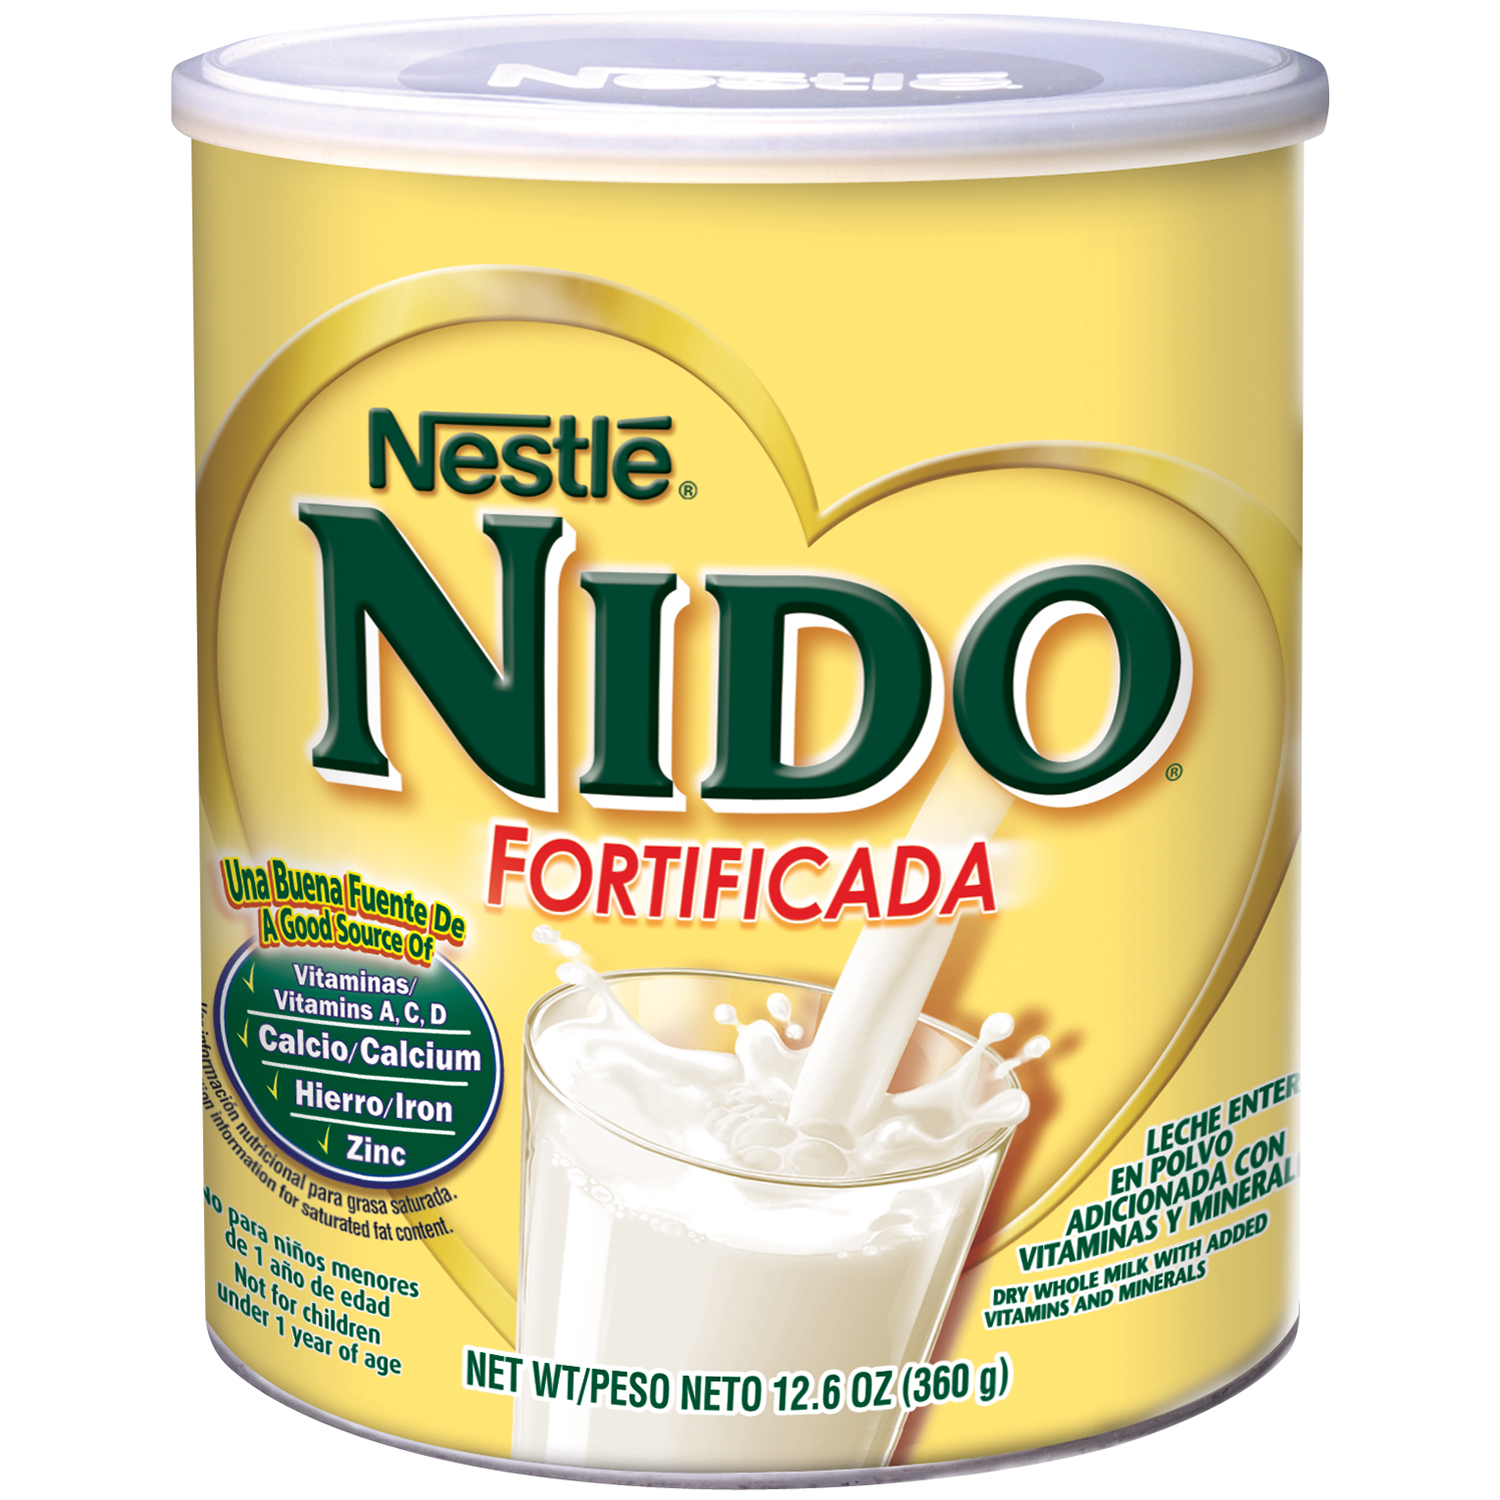 NESTLE NIDO Fortificada Dry Whole Milk, 12 - 12.6 oz Canisters